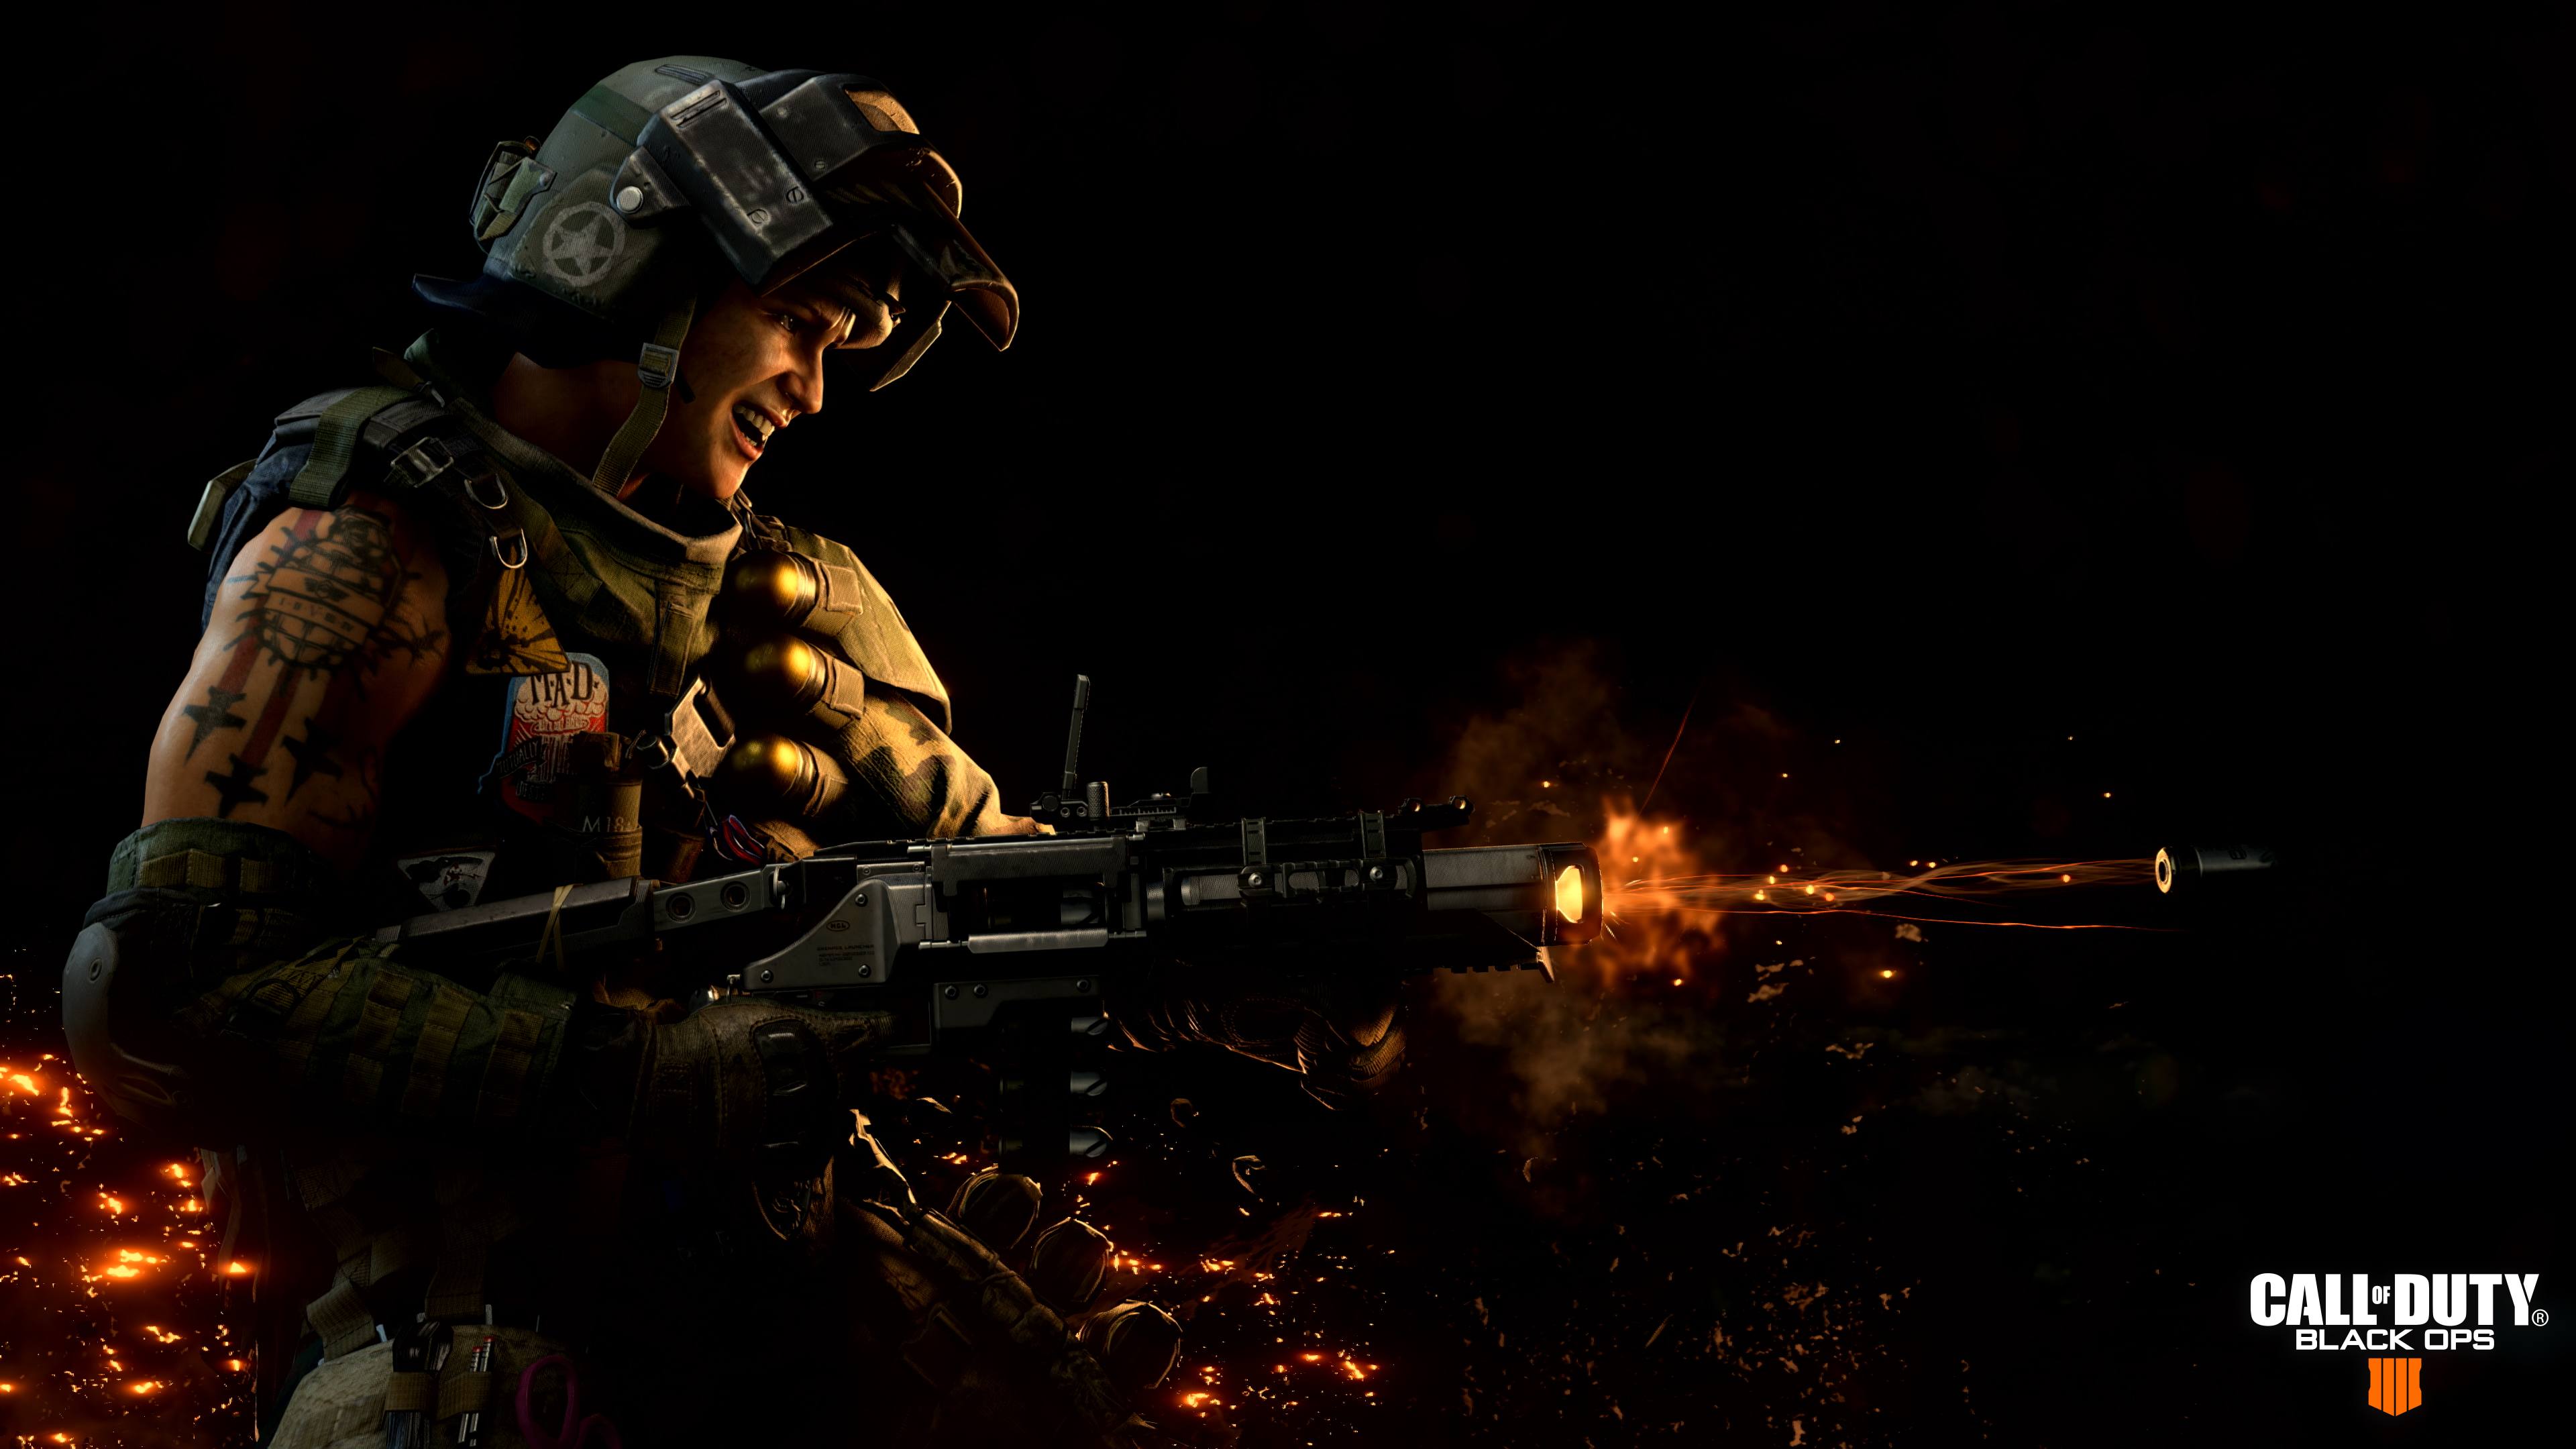 4k Wallpapers For Pc Cars Call Of Duty Black Ops 4 4k Hd Games 4k Wallpapers